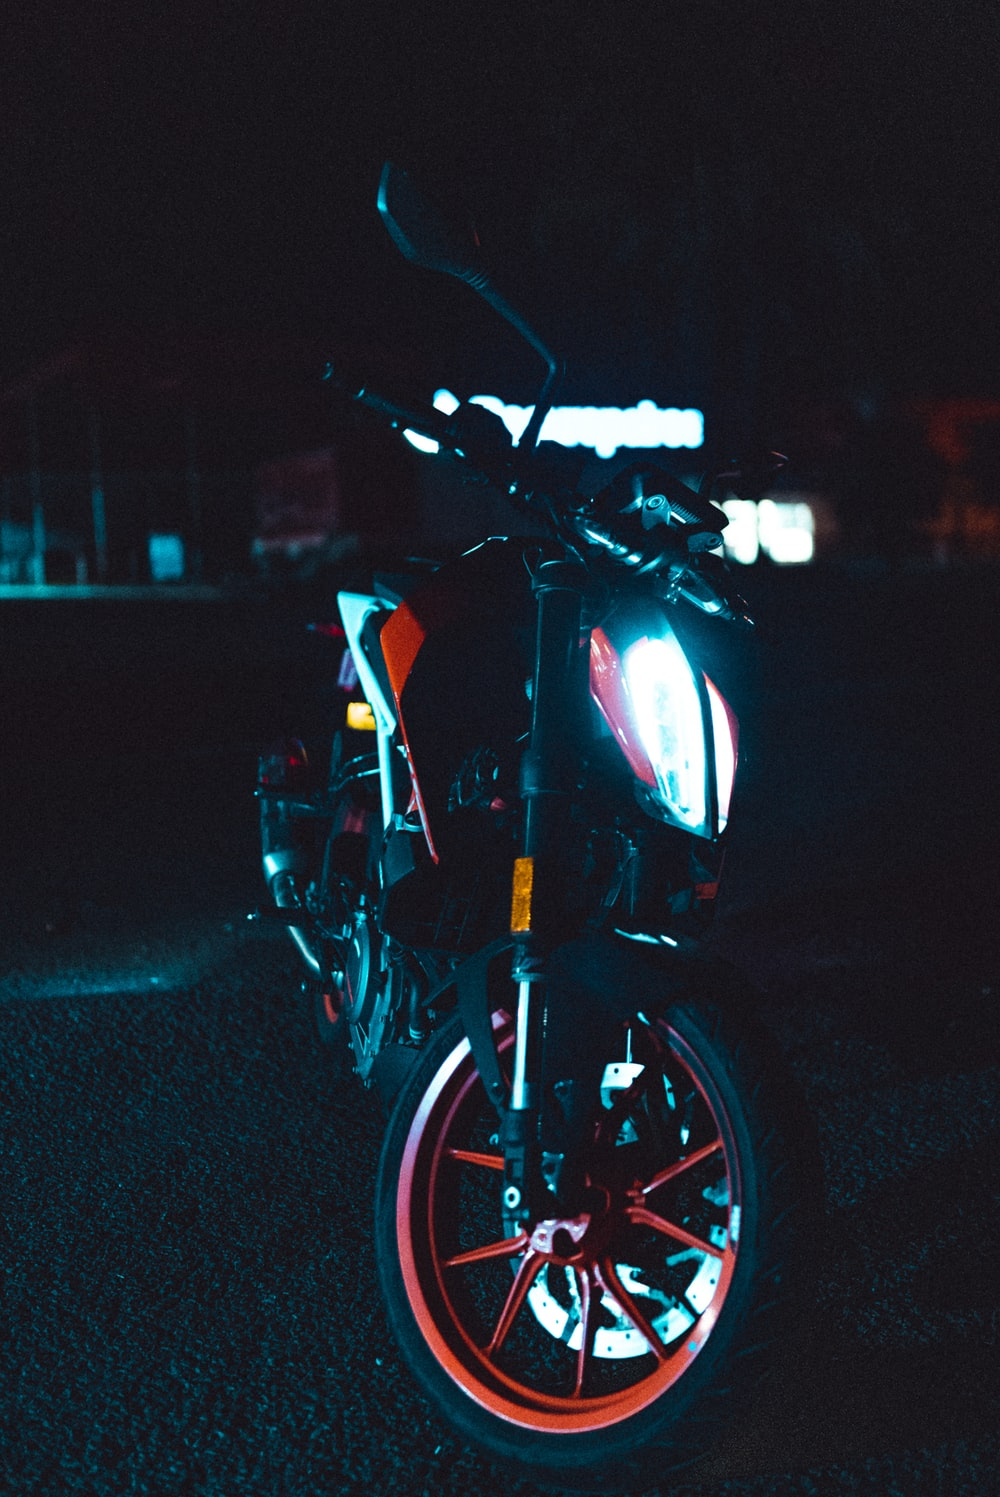 black and yellow motorcycle on road during night time